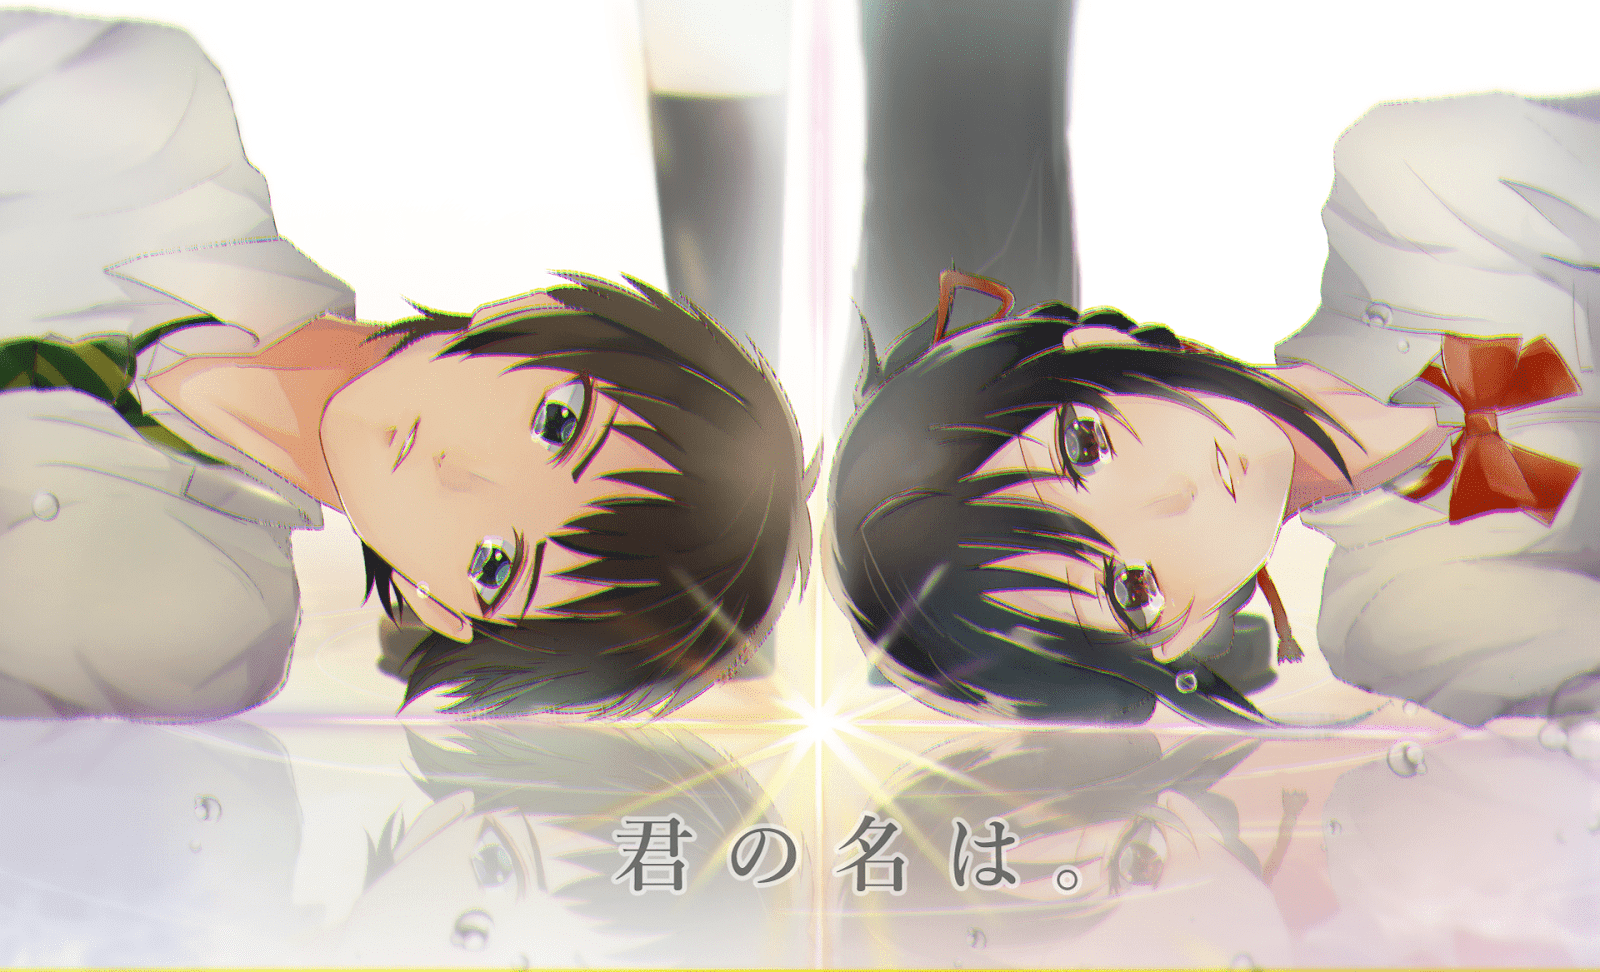 AowVN%2B%252827%2529 - [ Hình Nền ] Anime Your Name. - Kimi no Nawa full HD cực đẹp | Anime Wallpaper